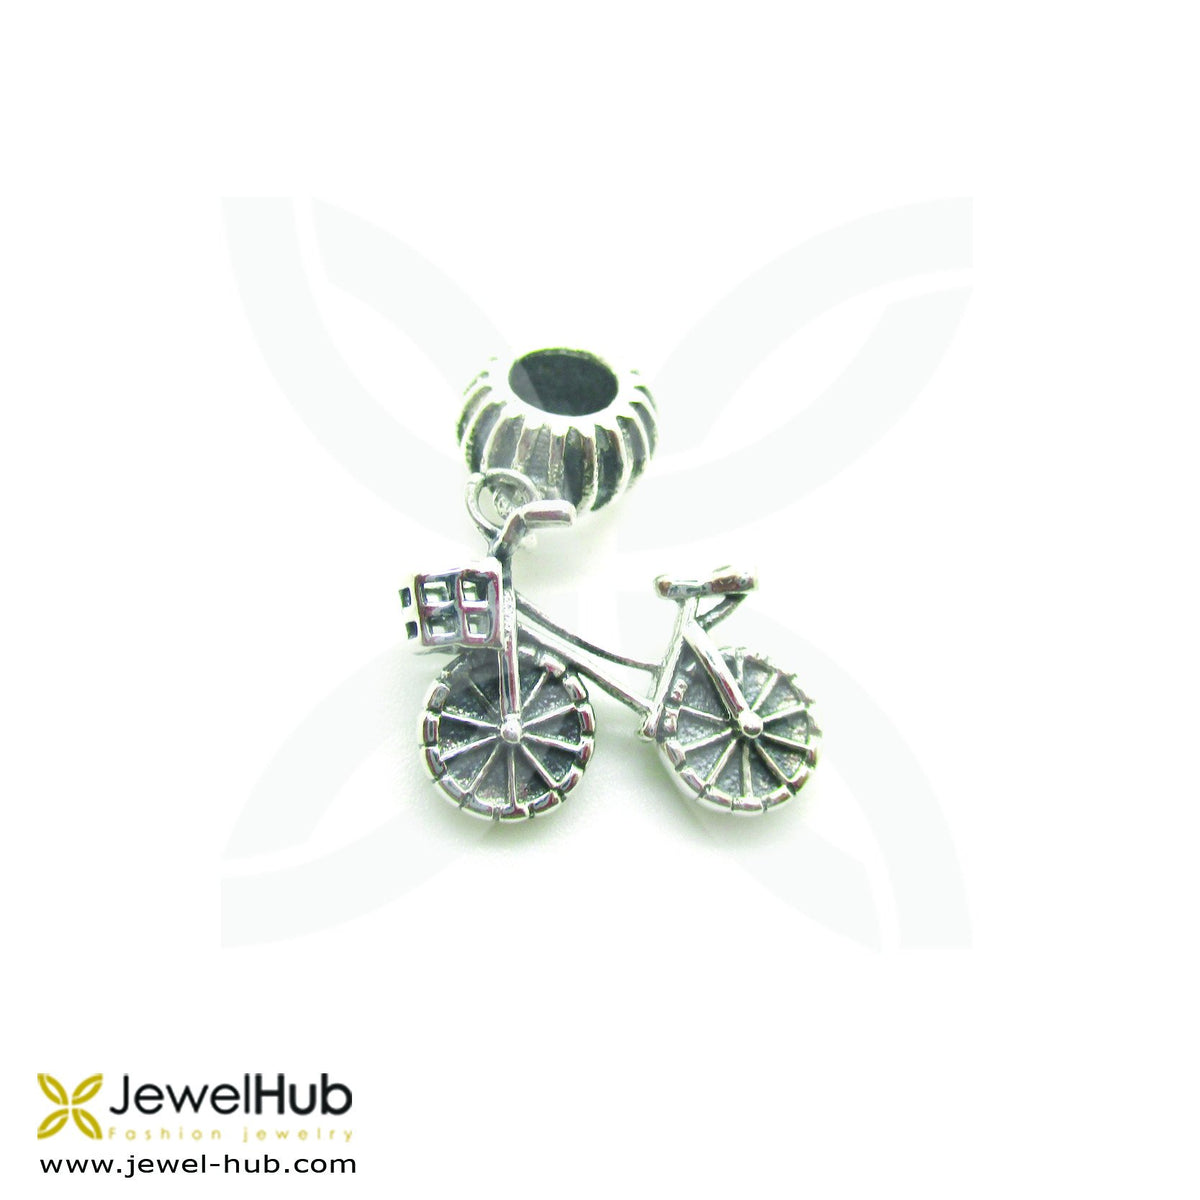 Bicycle 02 Sterling Silver 925 Charm, Silver Charm - JewelHub jewelry